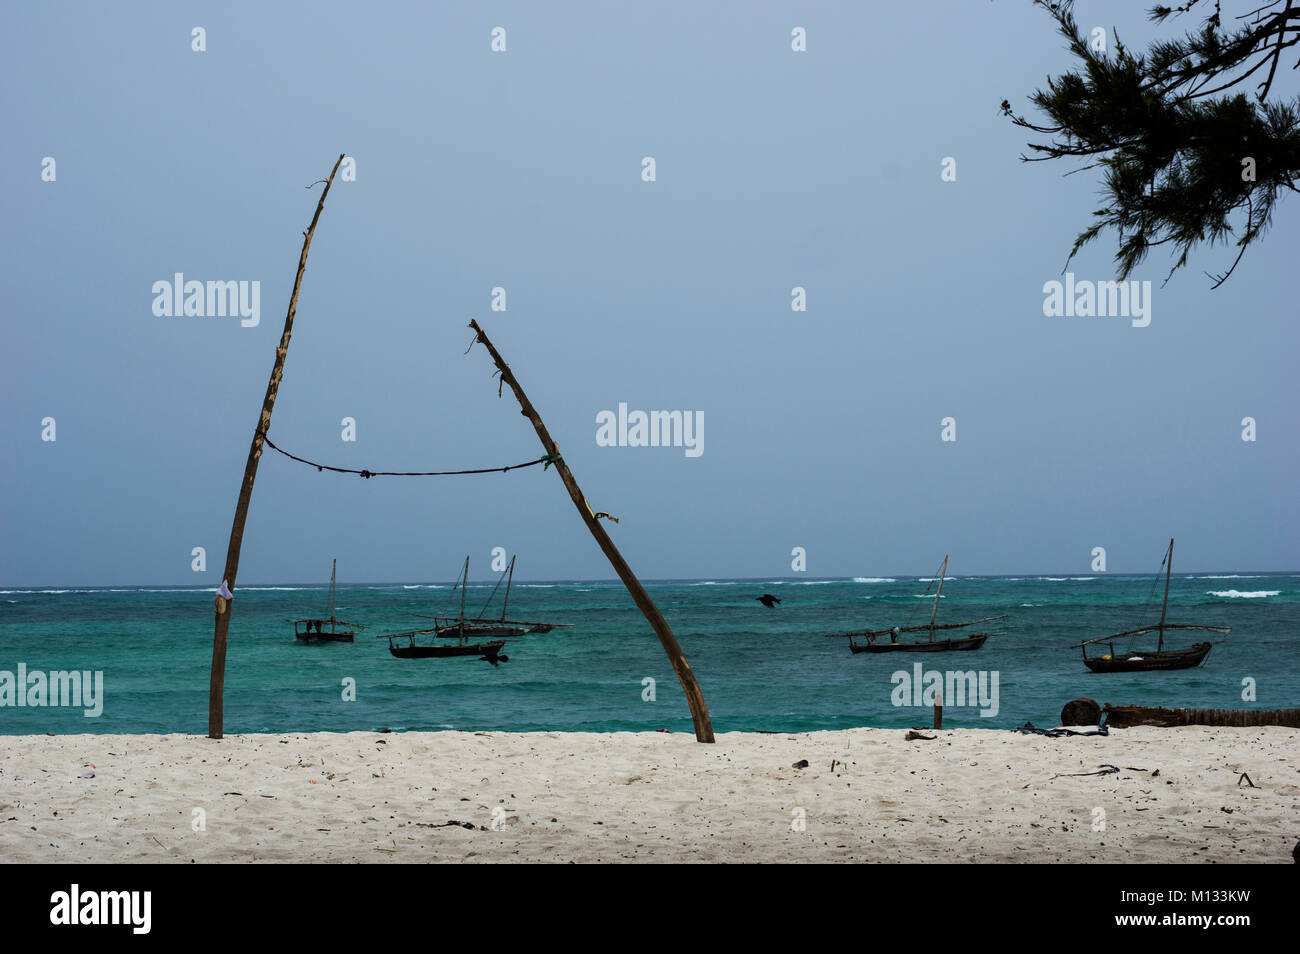 Two poles tied together with string, perhaps an inpromptu washing line, with traditional dhow boats in the background - Stock Image